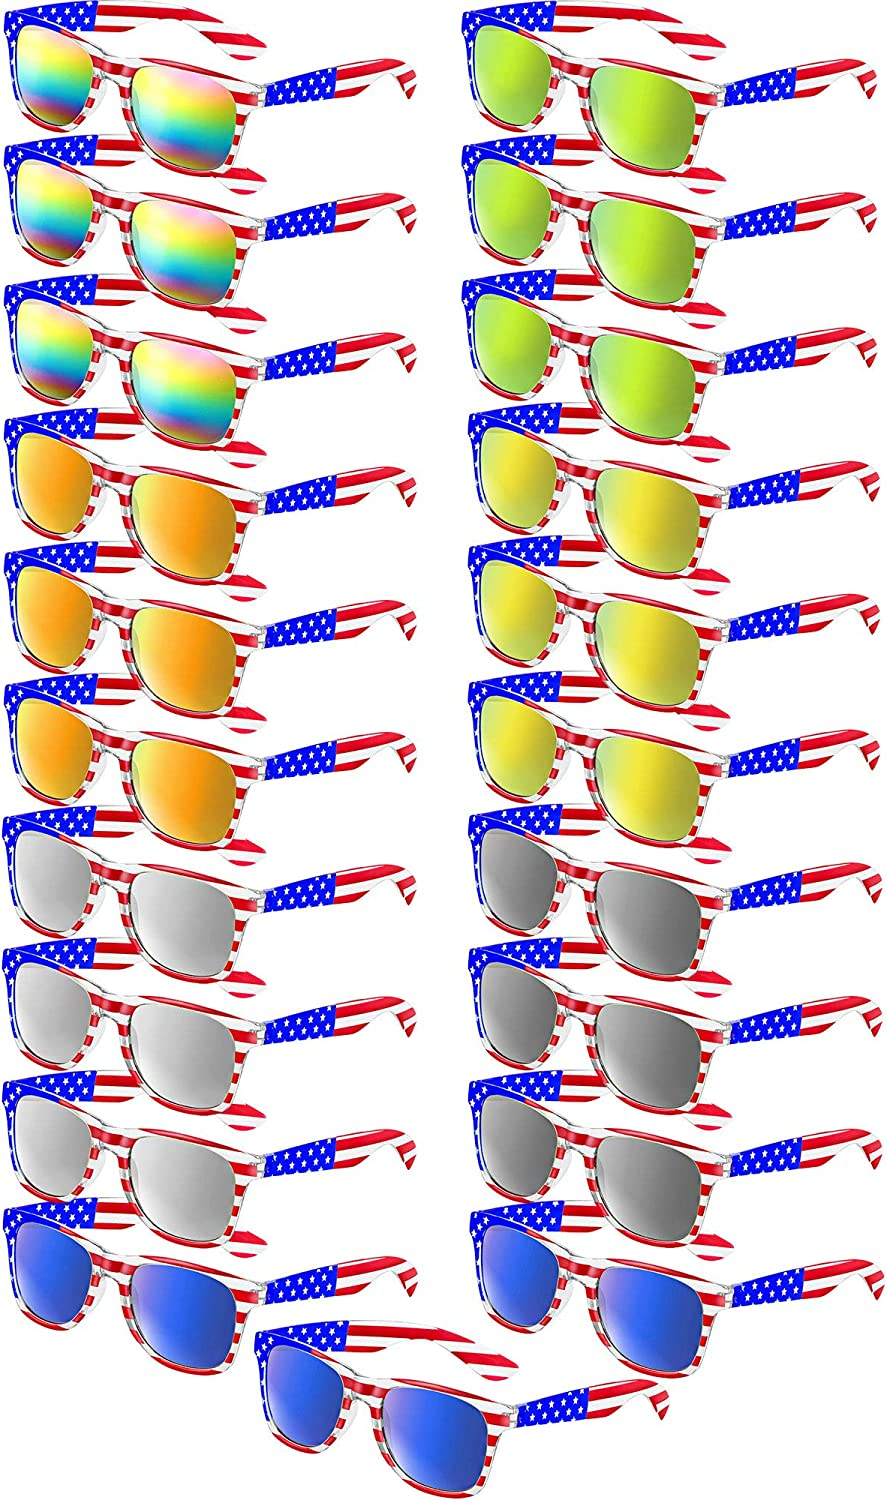 United We Stand Patriotic USA US Flag Sunglasses Navy Blue Mens Retro Glasses